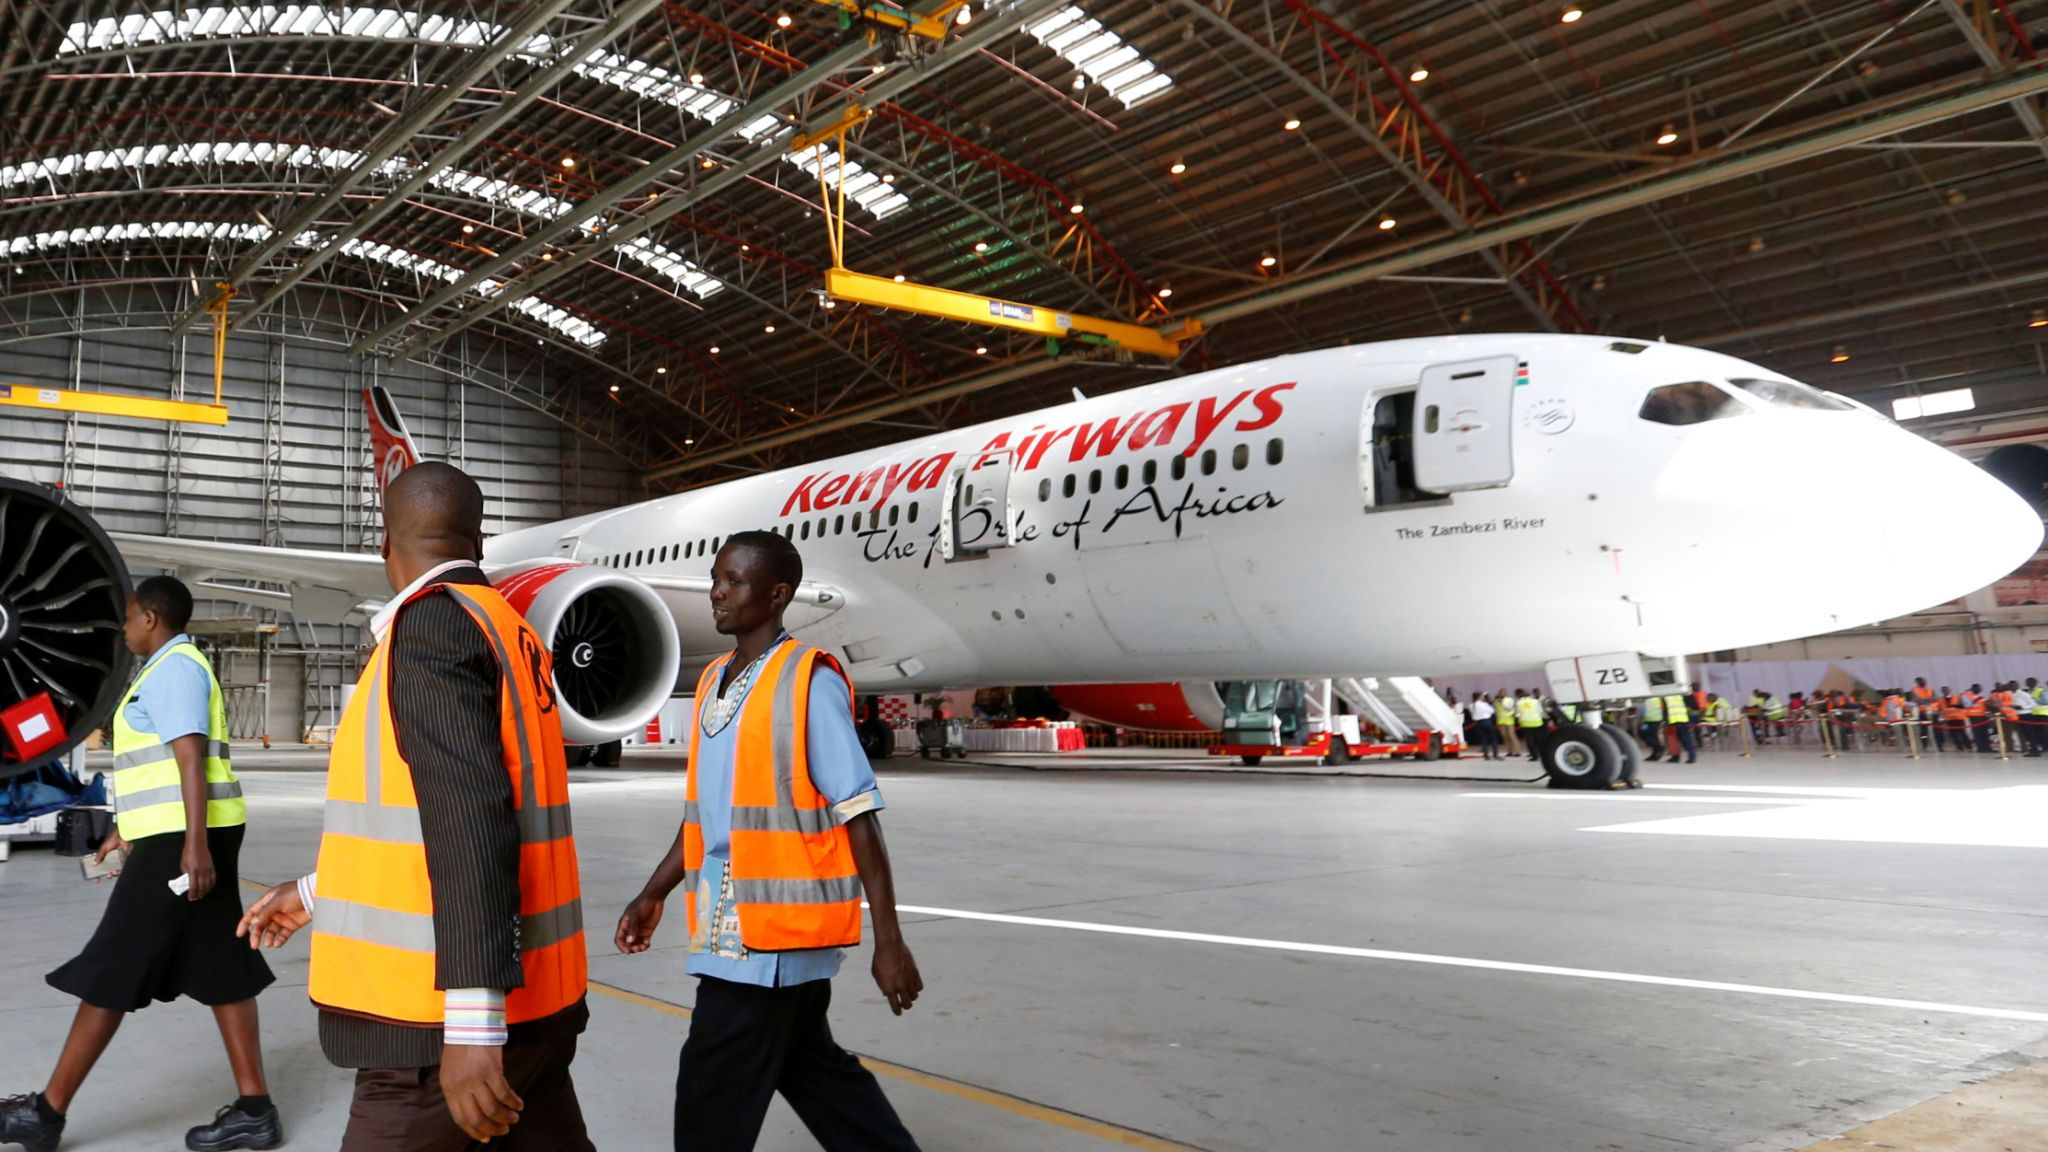 skynews-dreamliner-kenya-airways_4707553.jpg